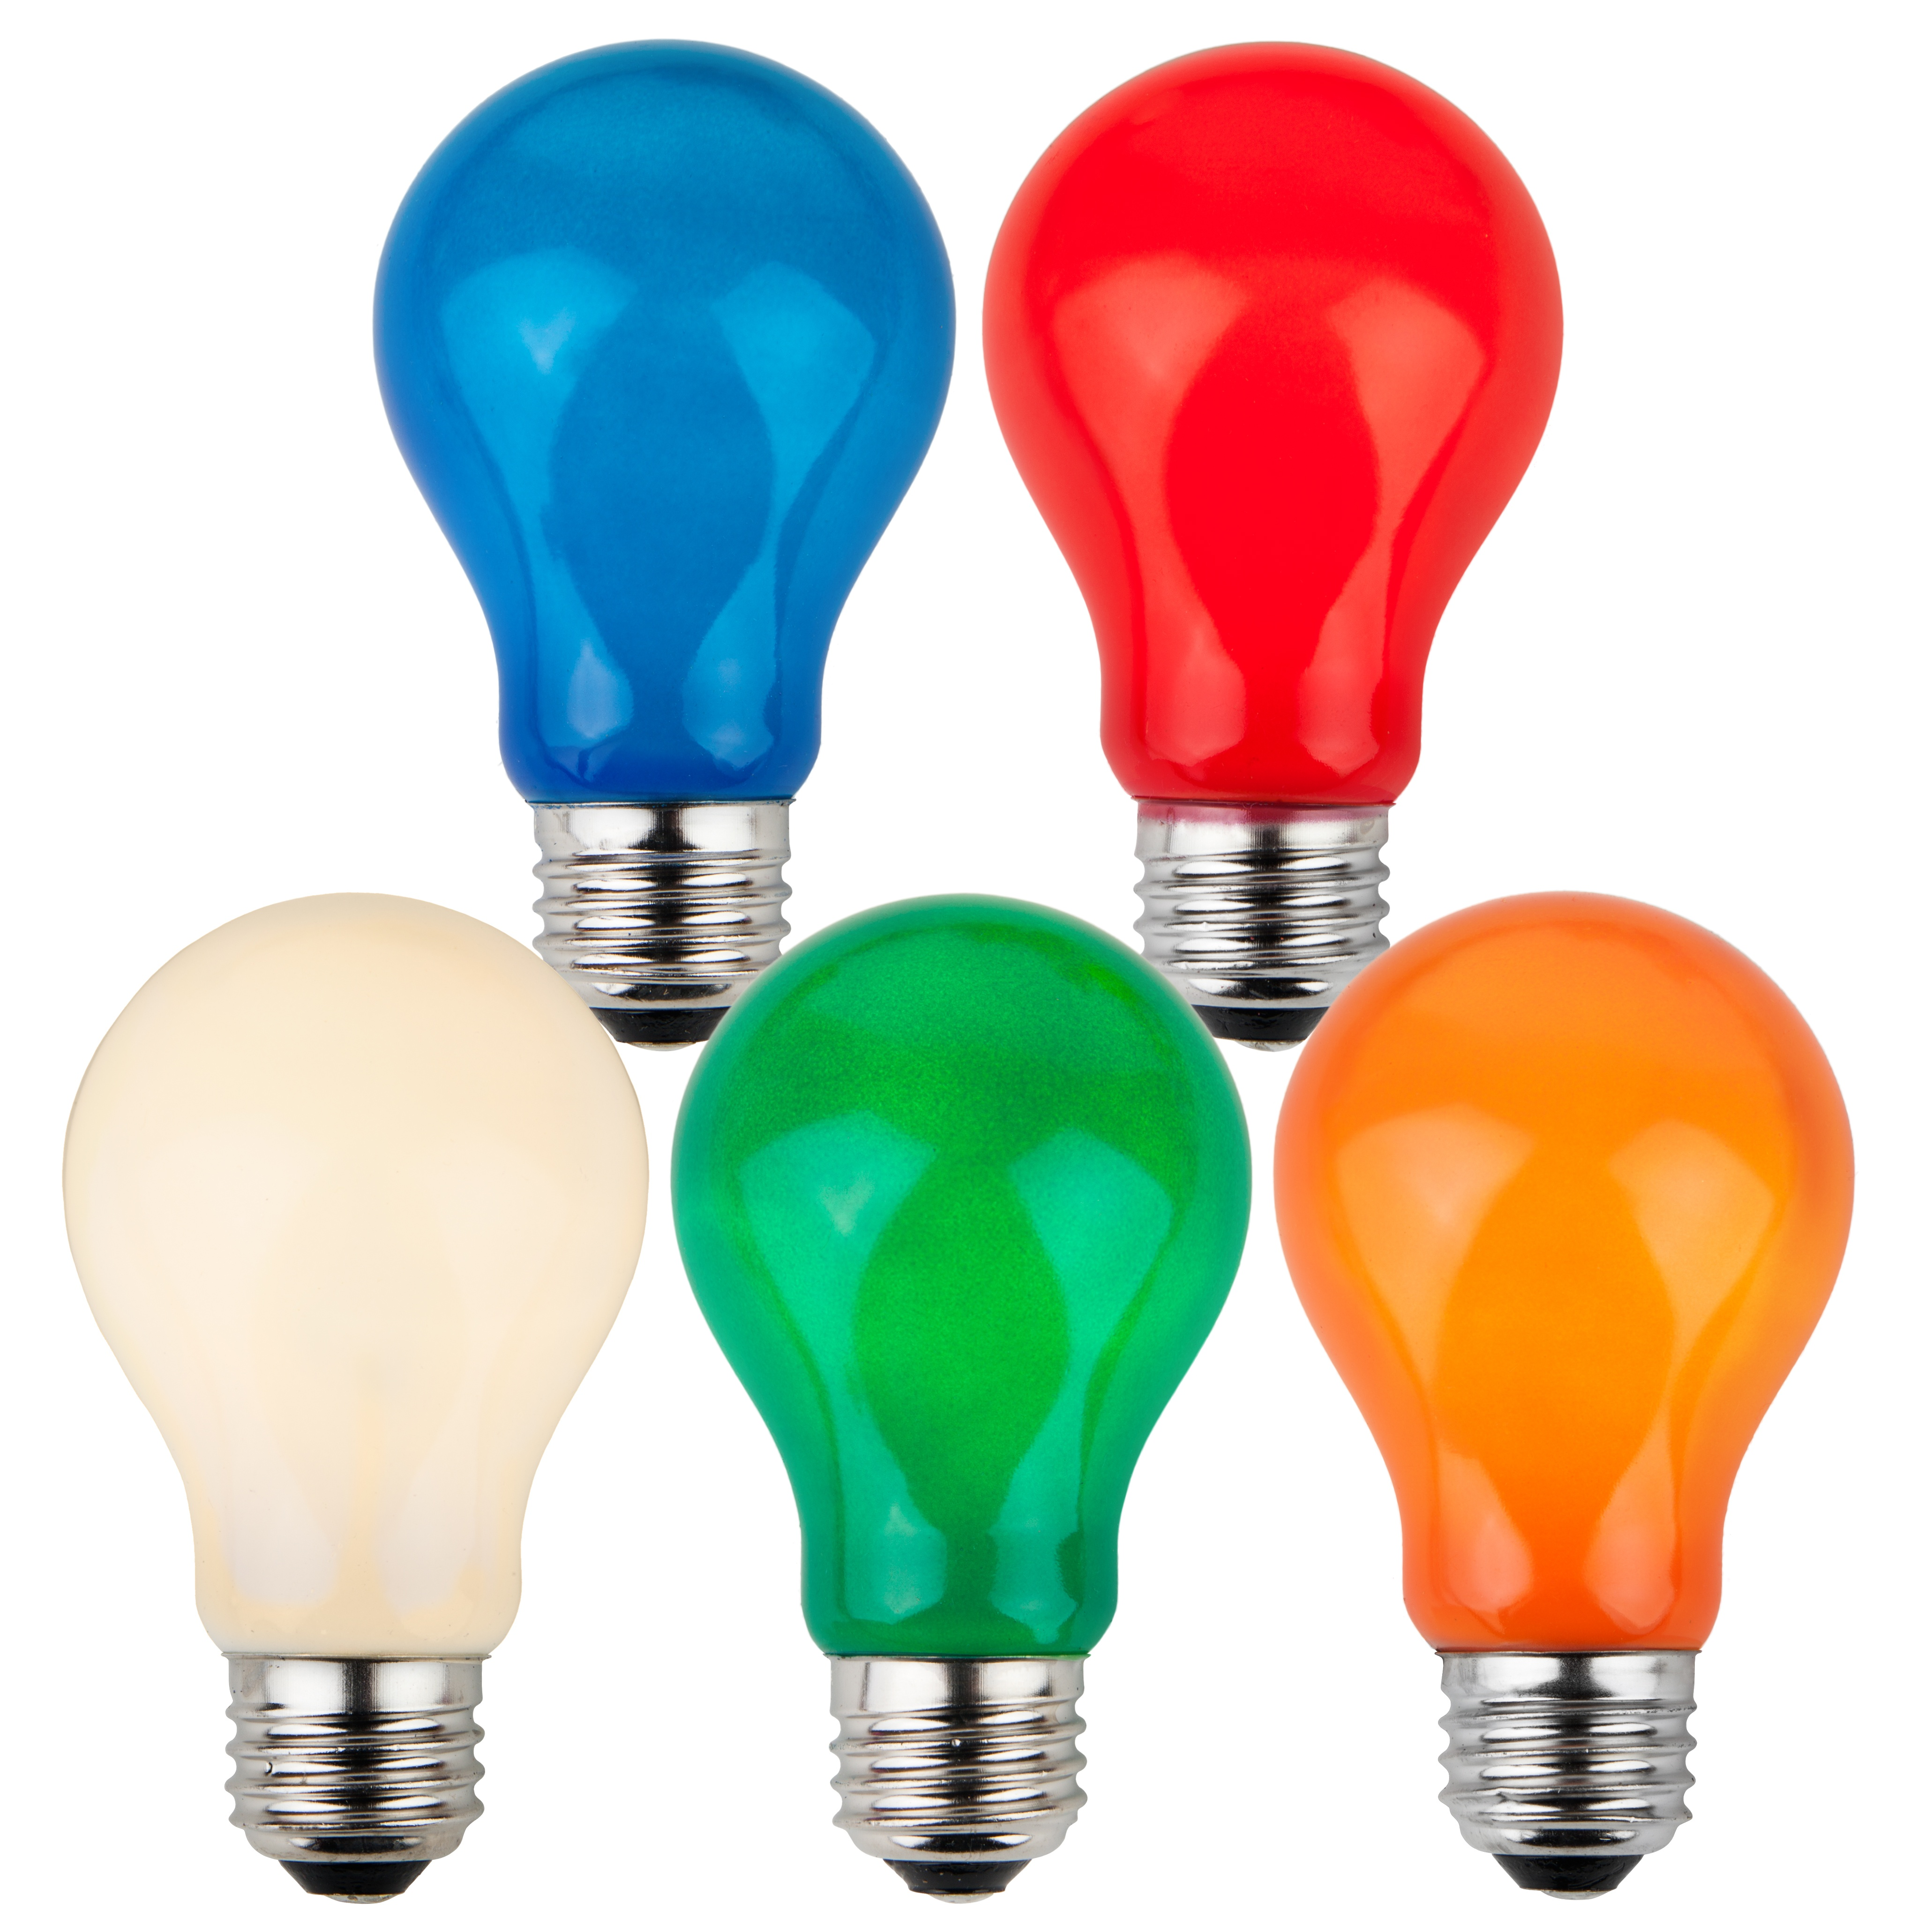 A19 Multicolored Opaque Incandescent Bulb